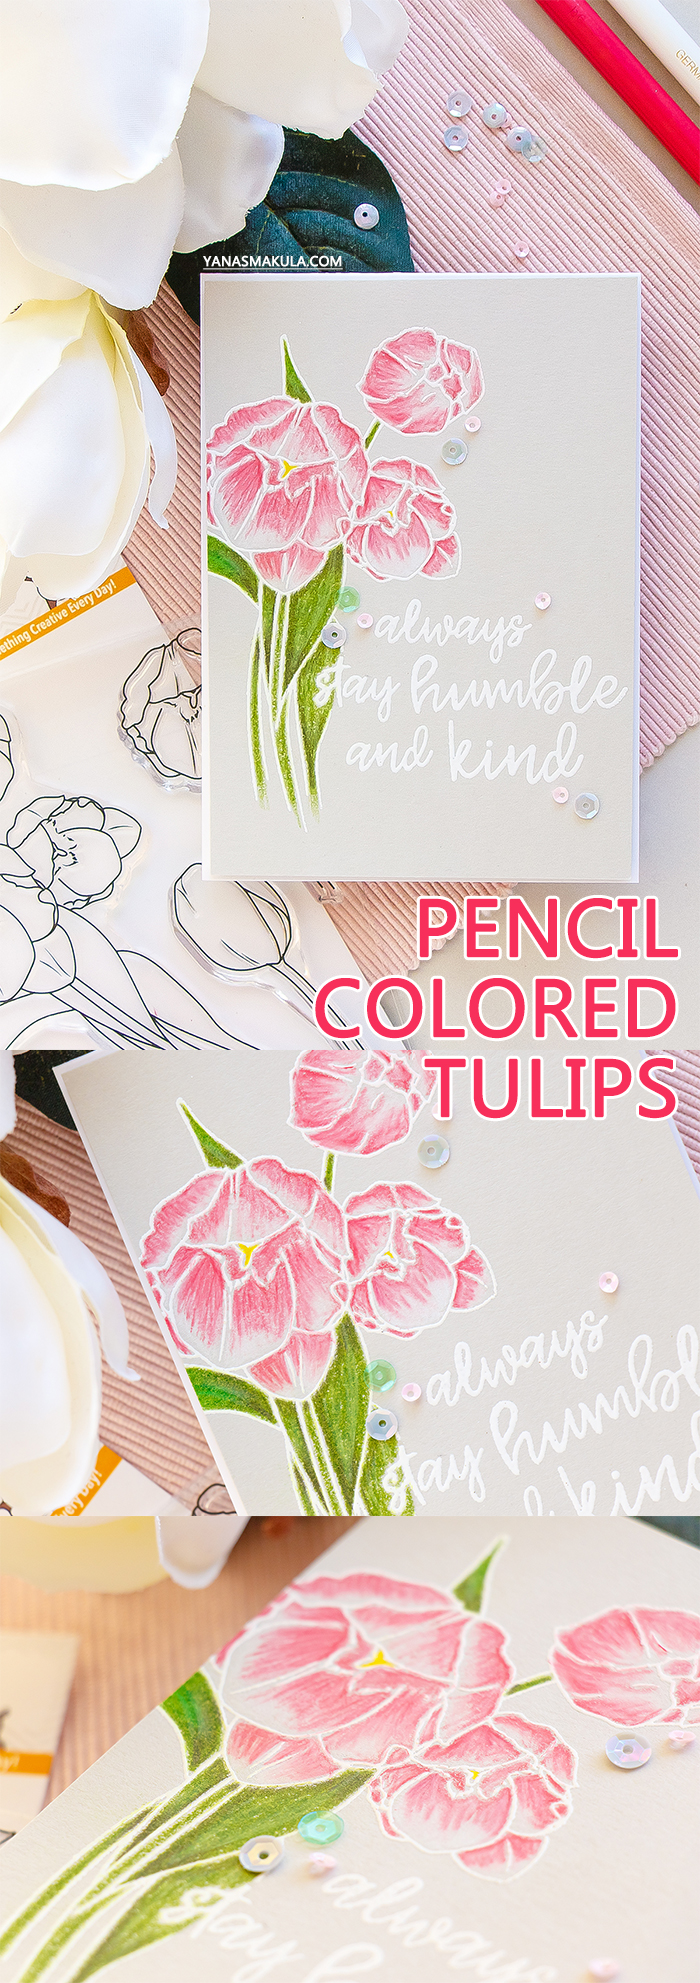 It's STAMPtember! | WPlus9 Exclusive – Humble & Kind. Pencil colored tulips card by Yana Smakula